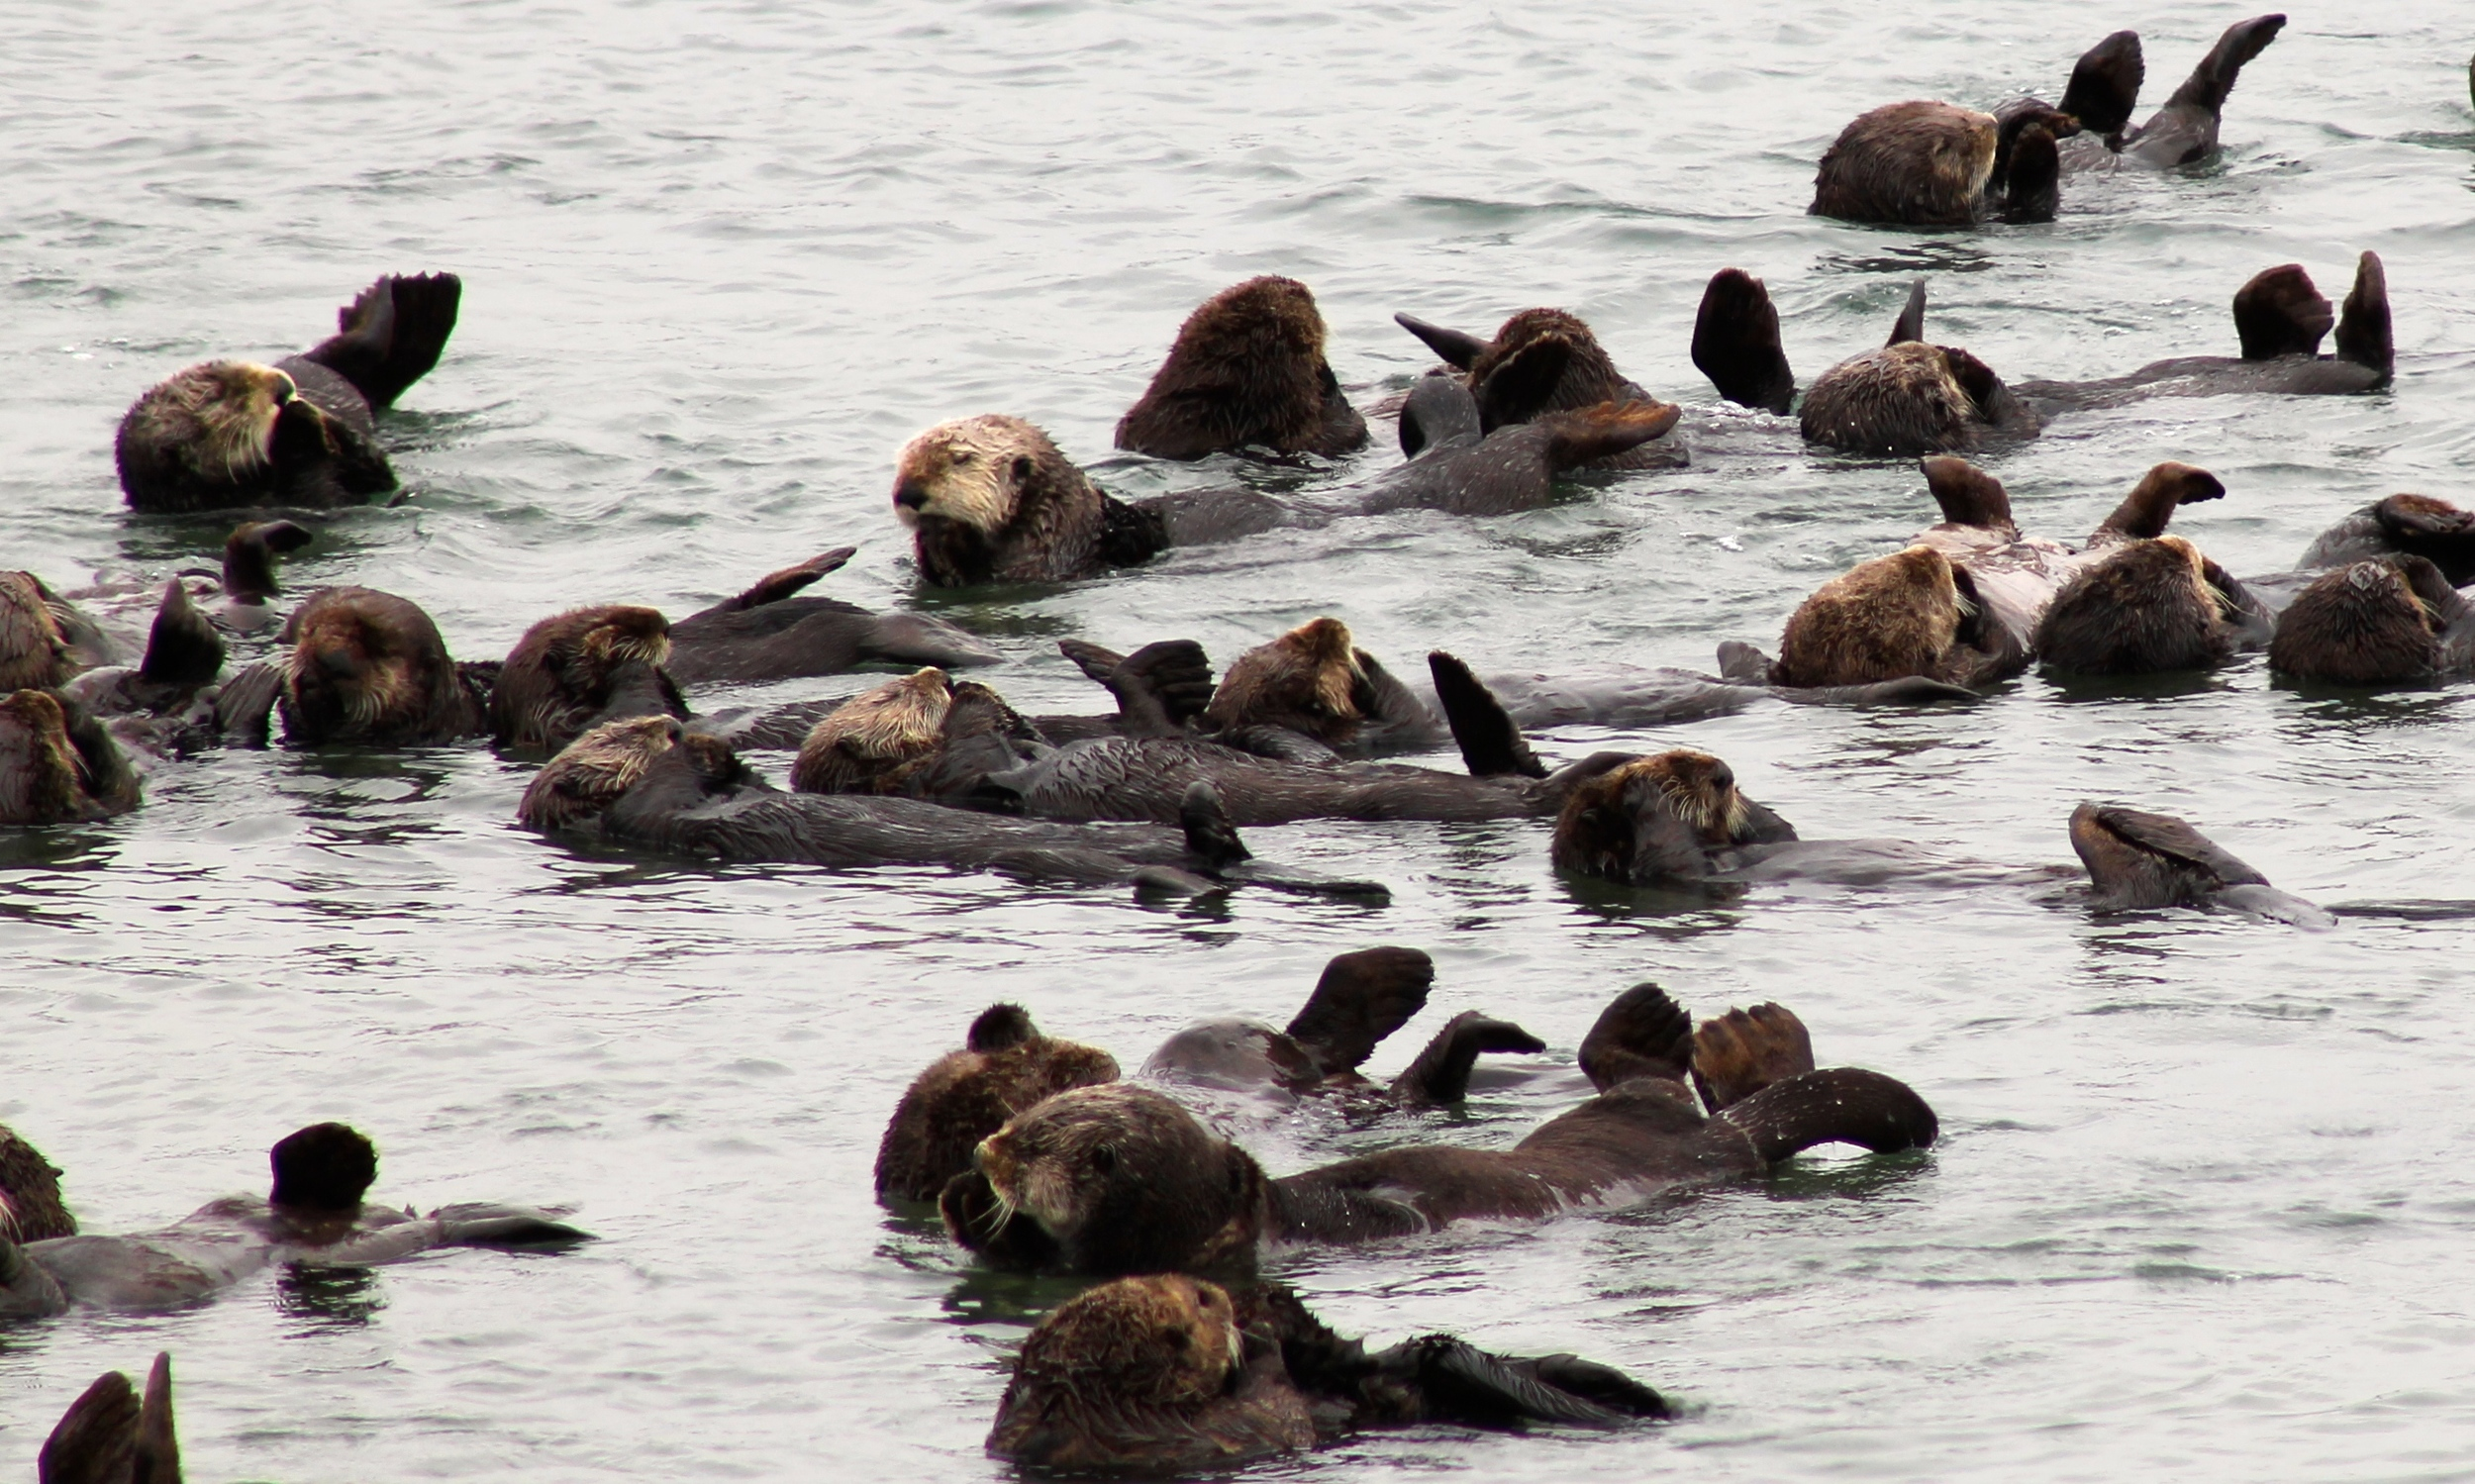 Raft of otters near Elkhorn Slough.